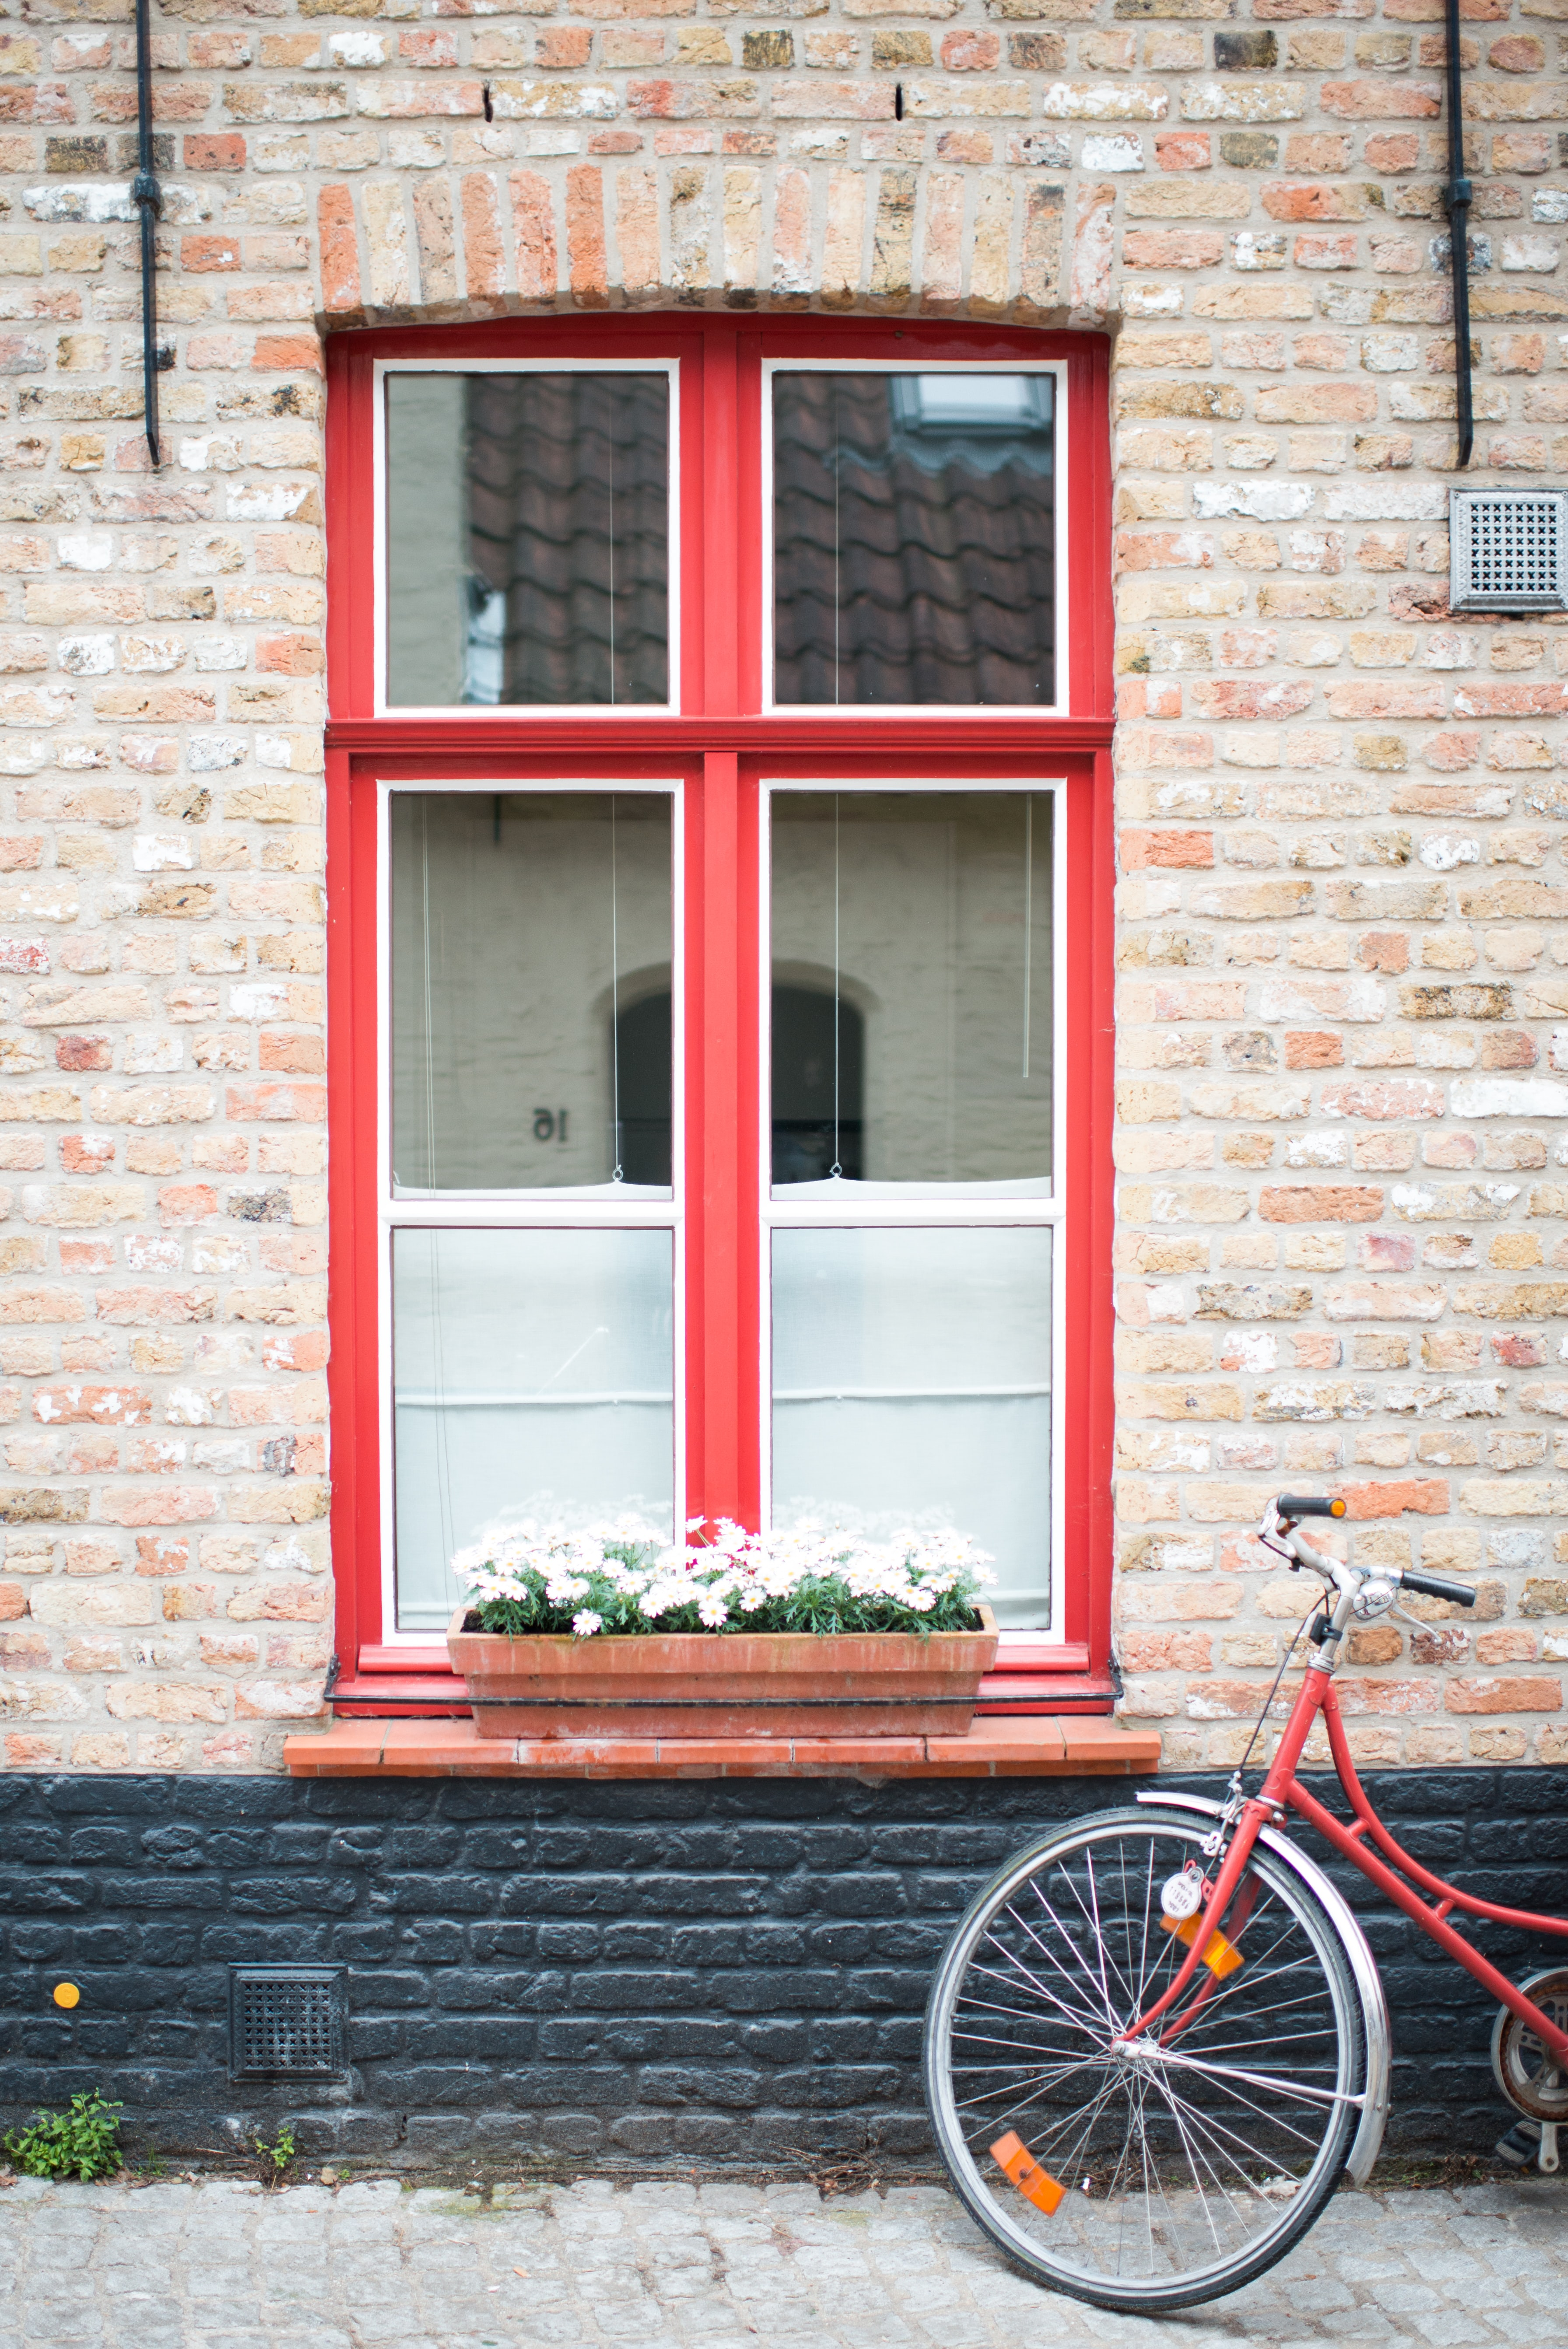 red and white wooden framed window with potted flowers